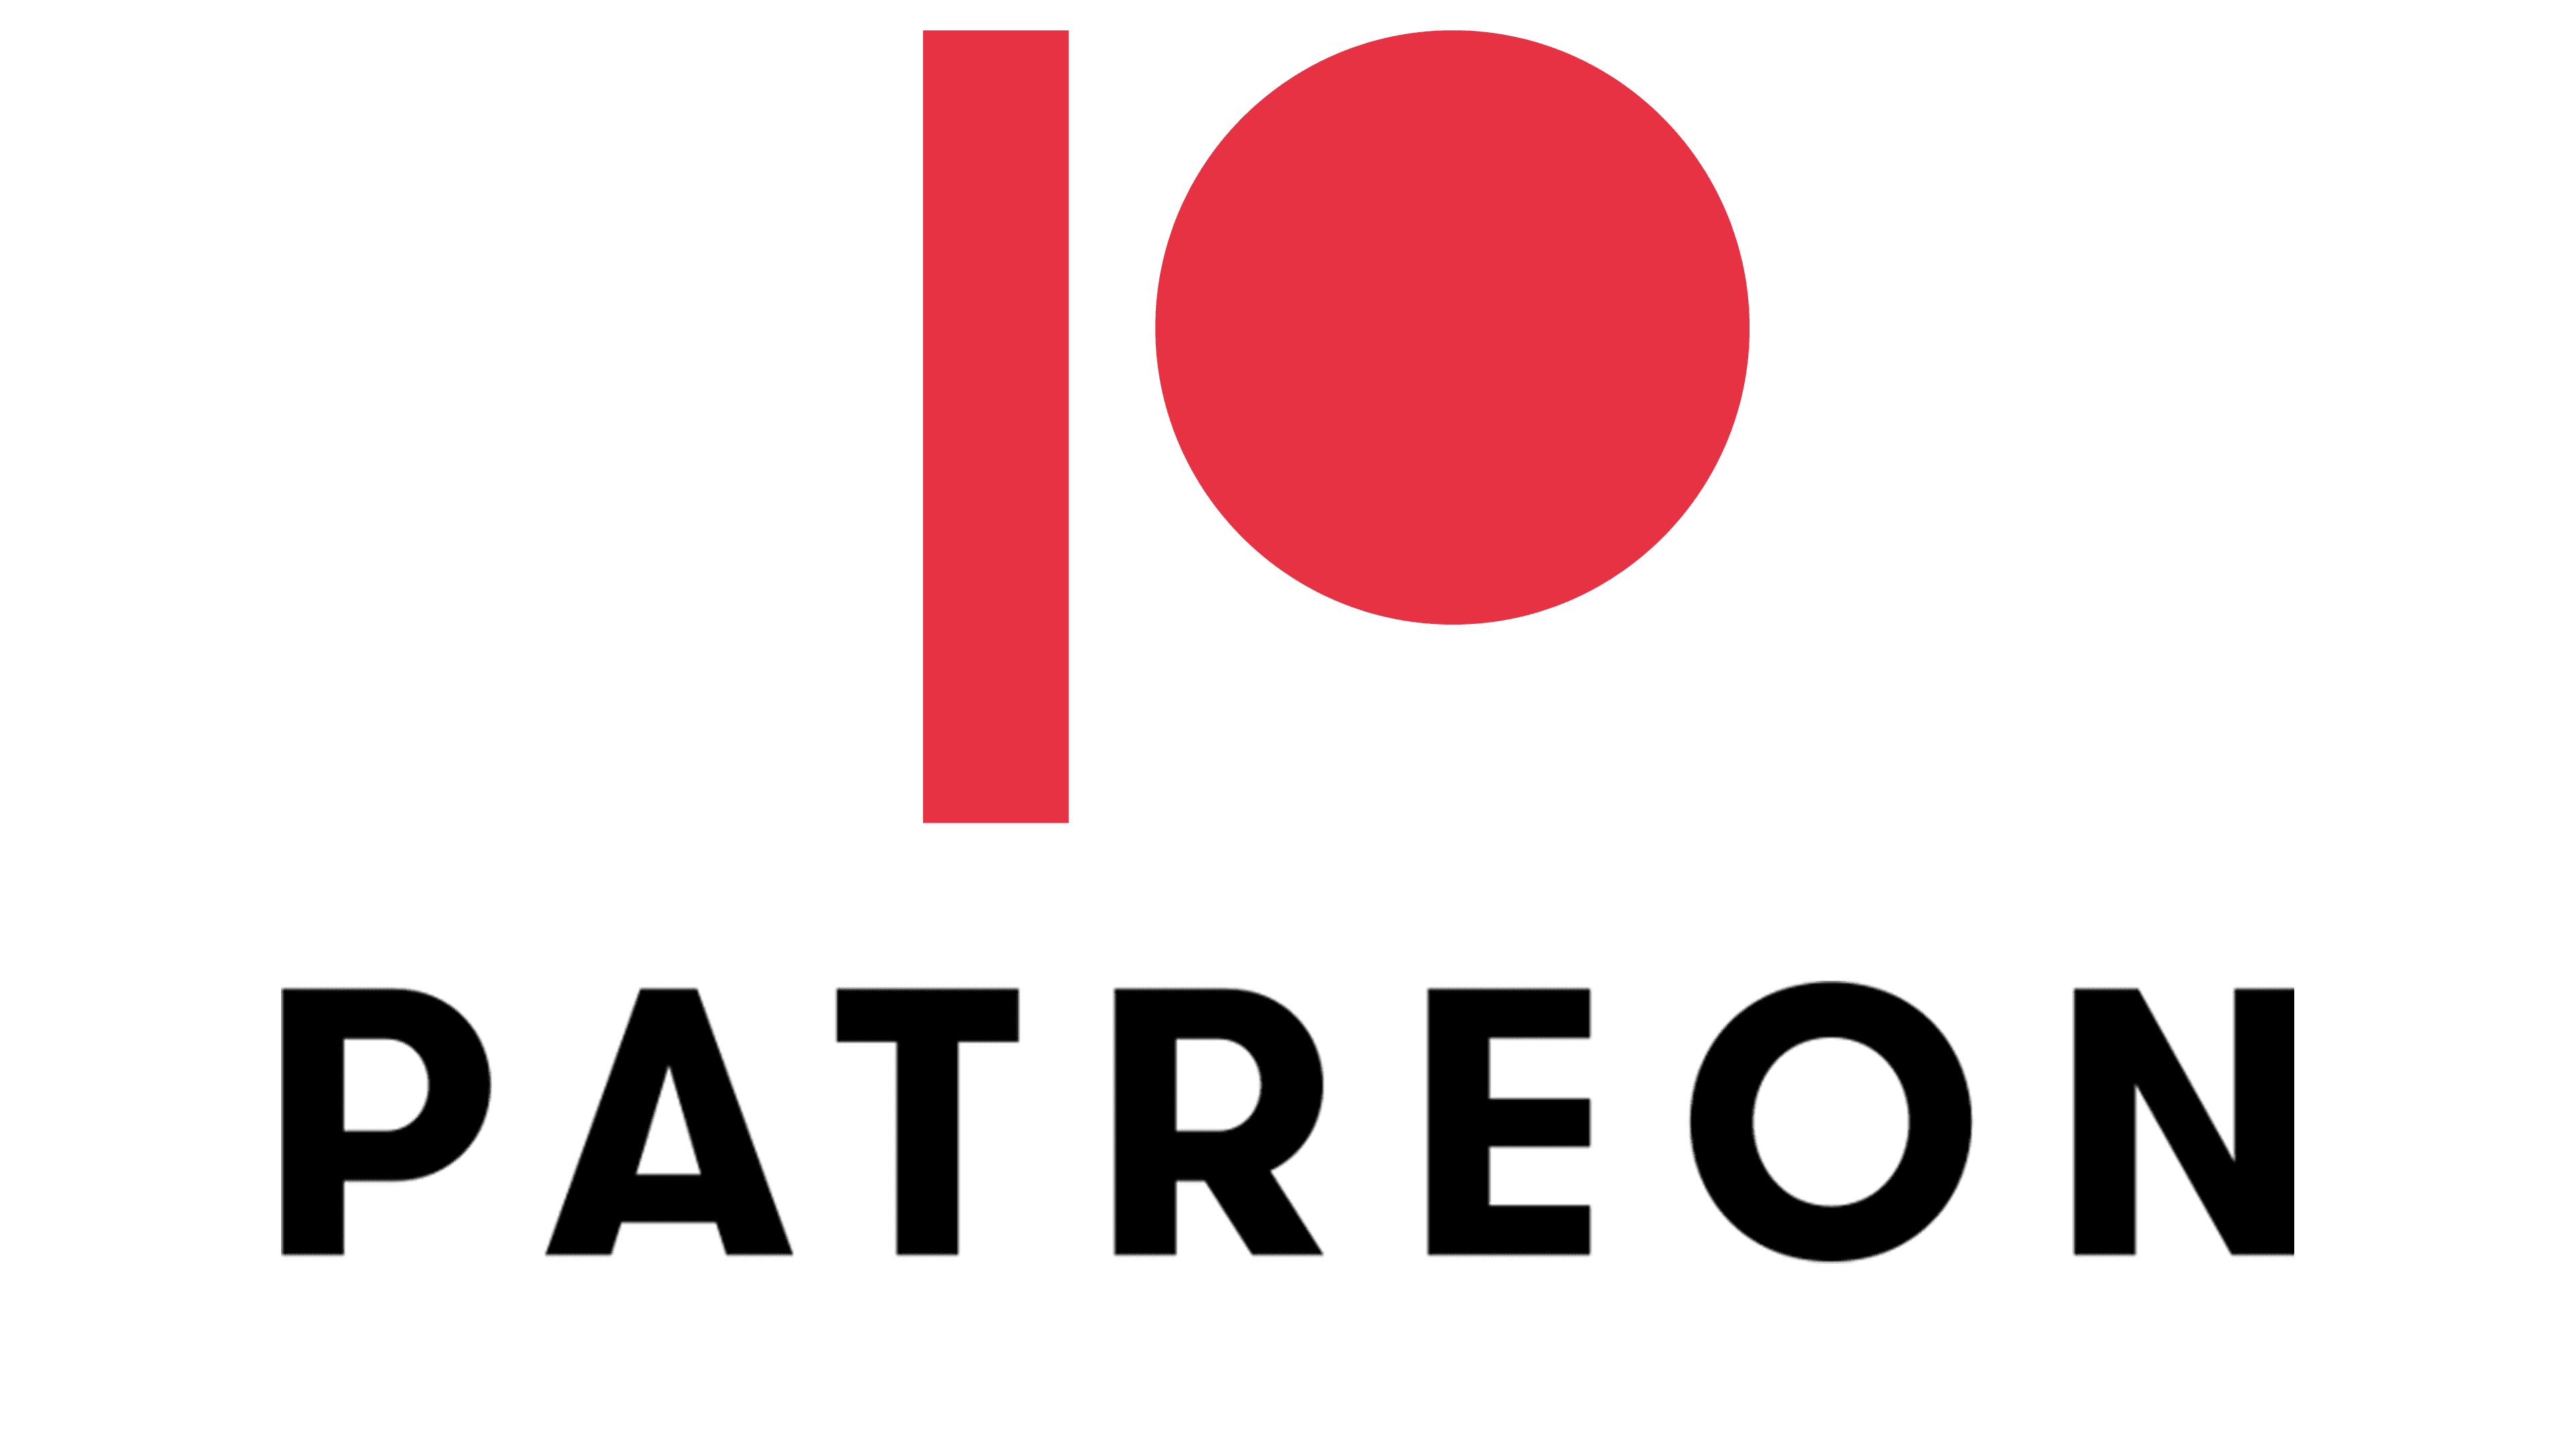 Patreon Logo and symbol, meaning, history, PNG